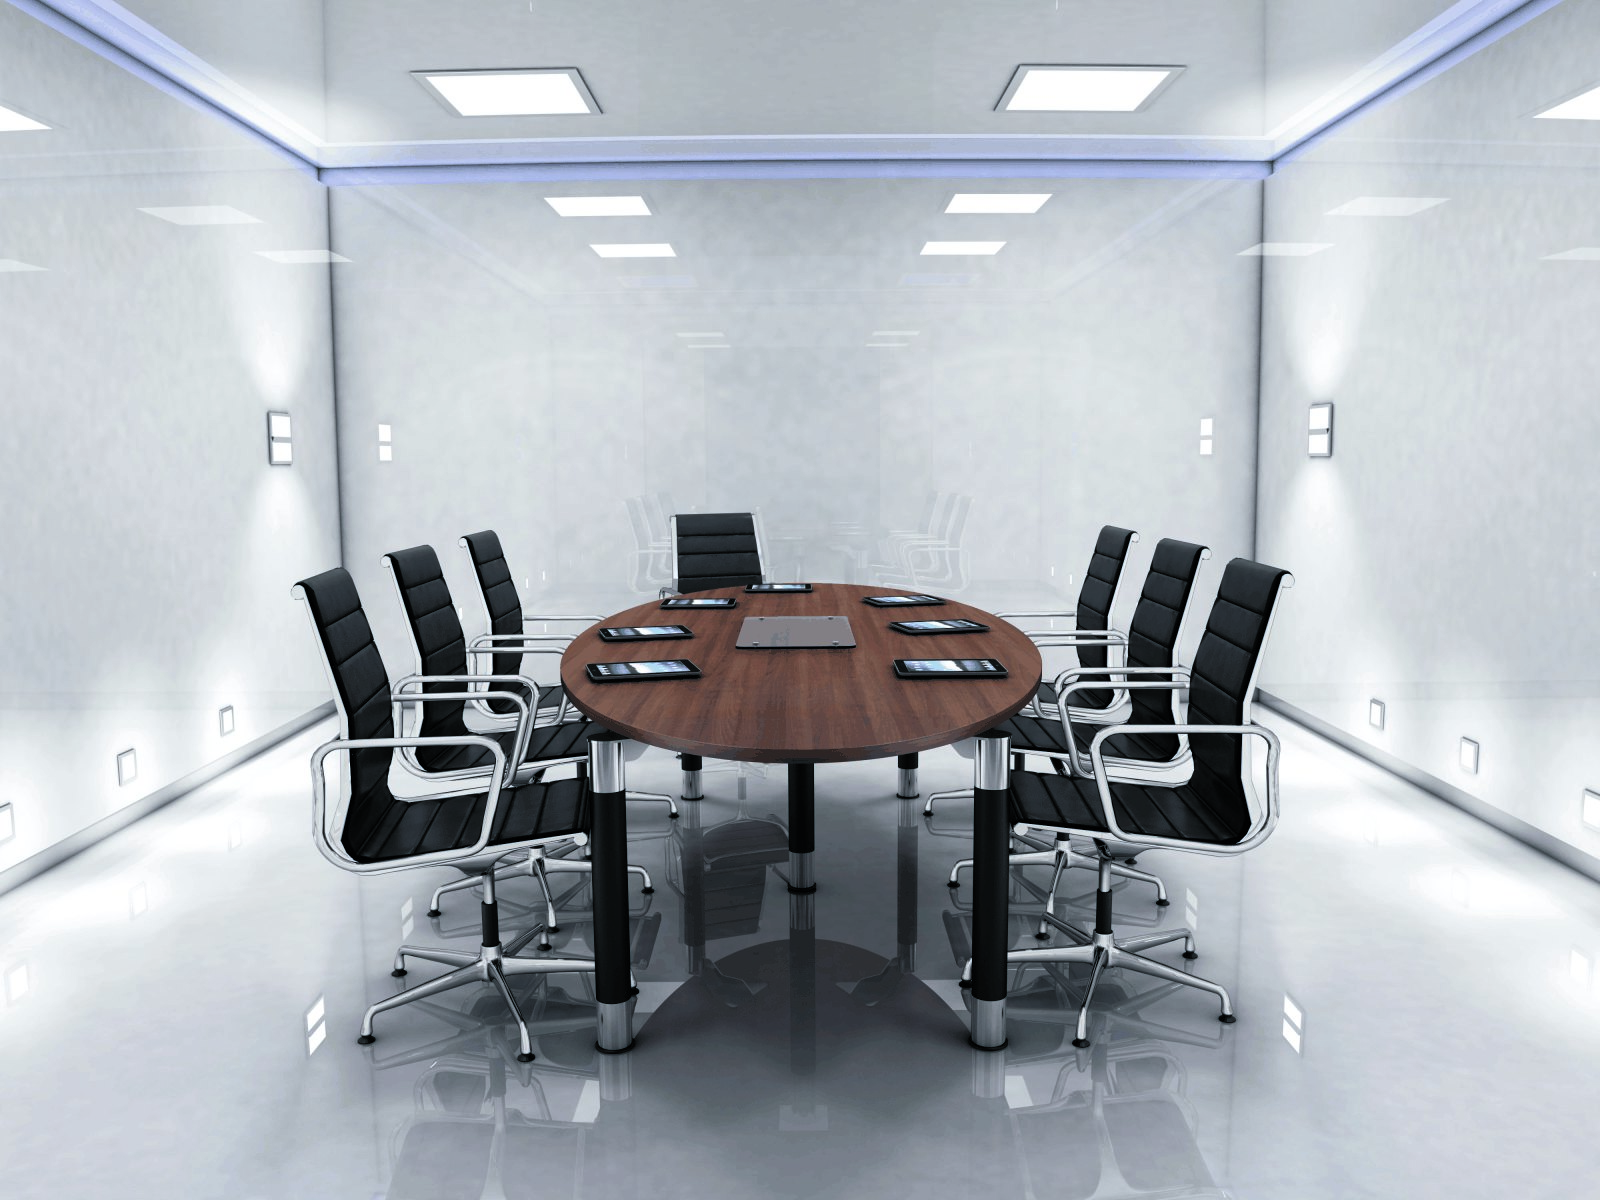 Reunion Clasic Solo boardroom table